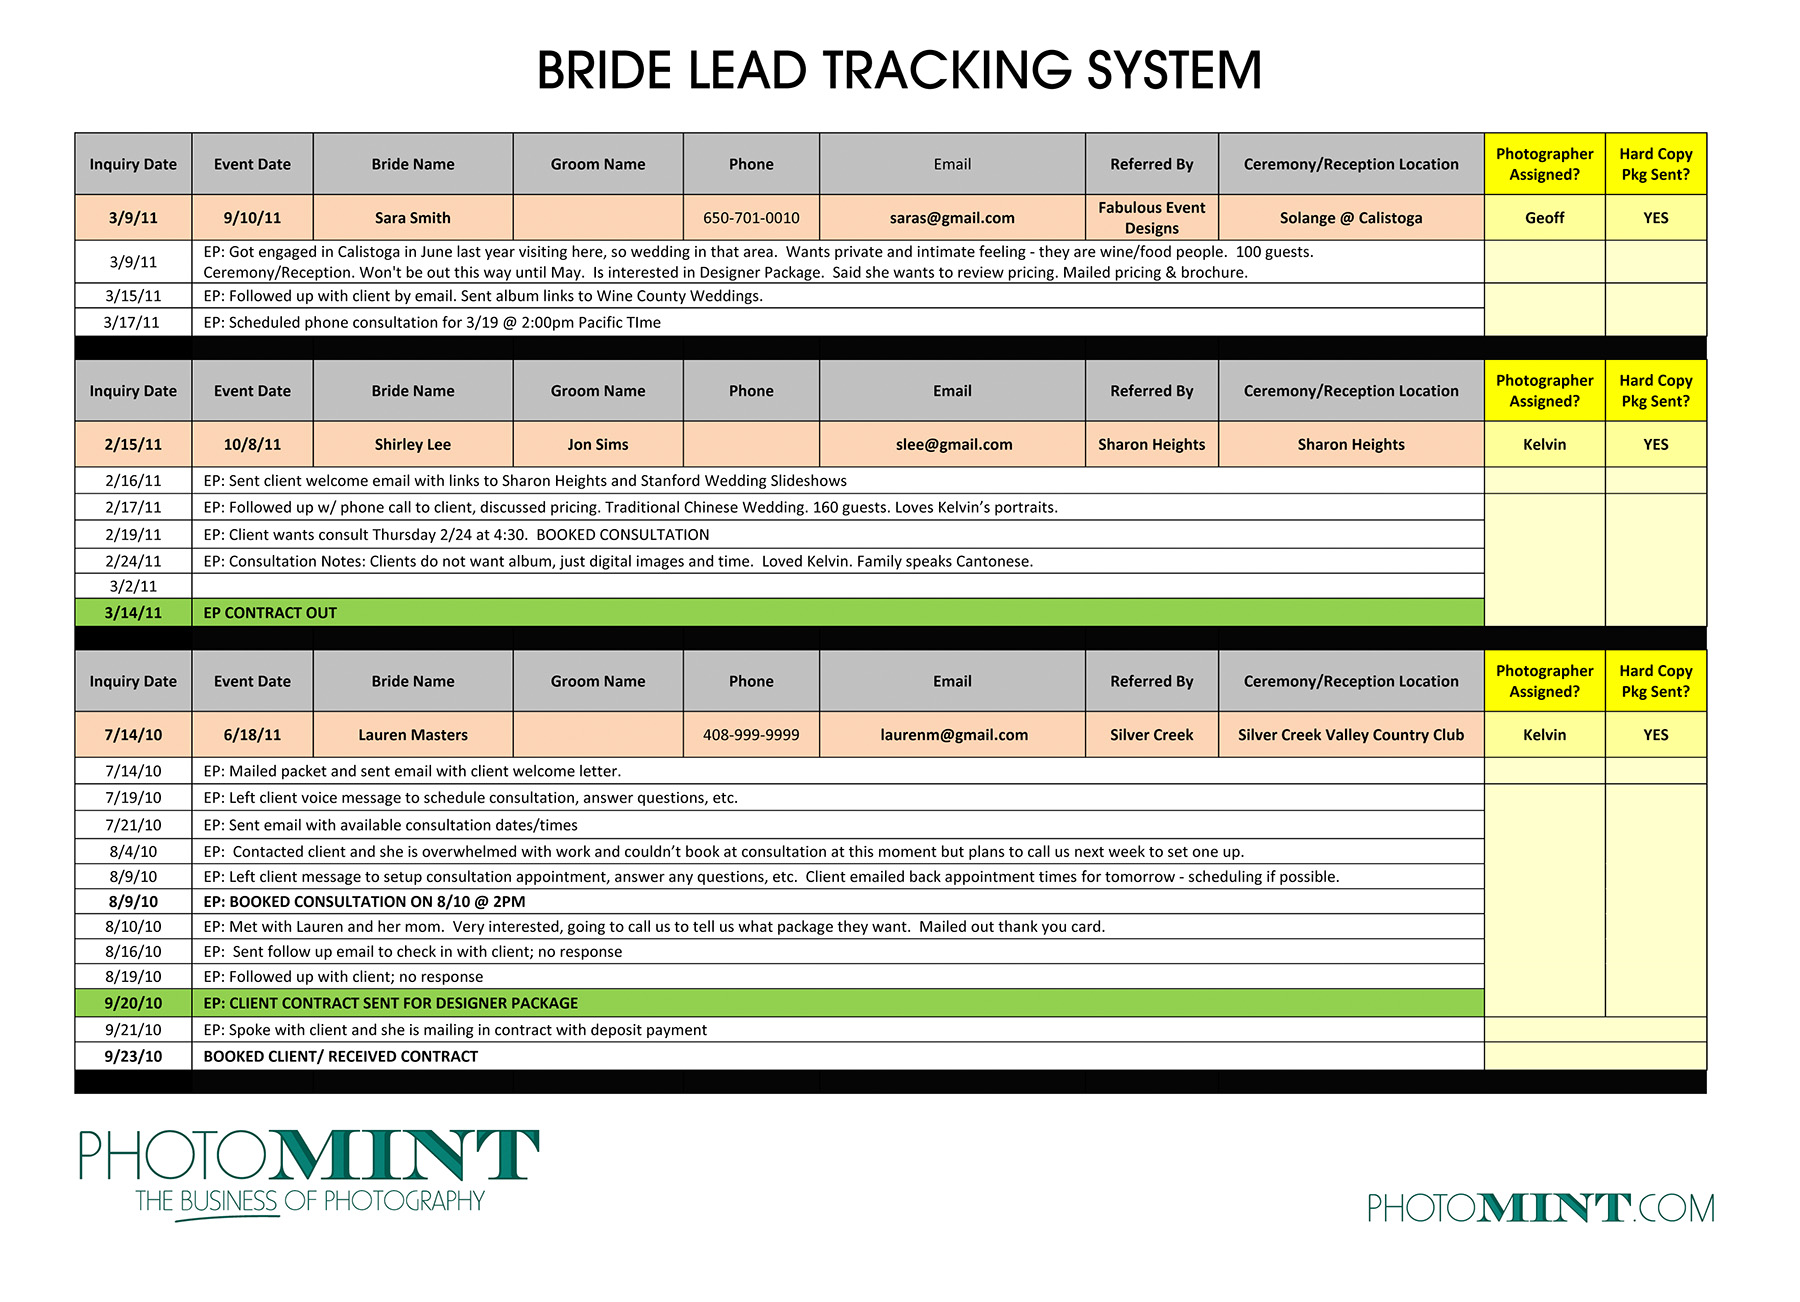 Client Tracking Spreadsheet Template